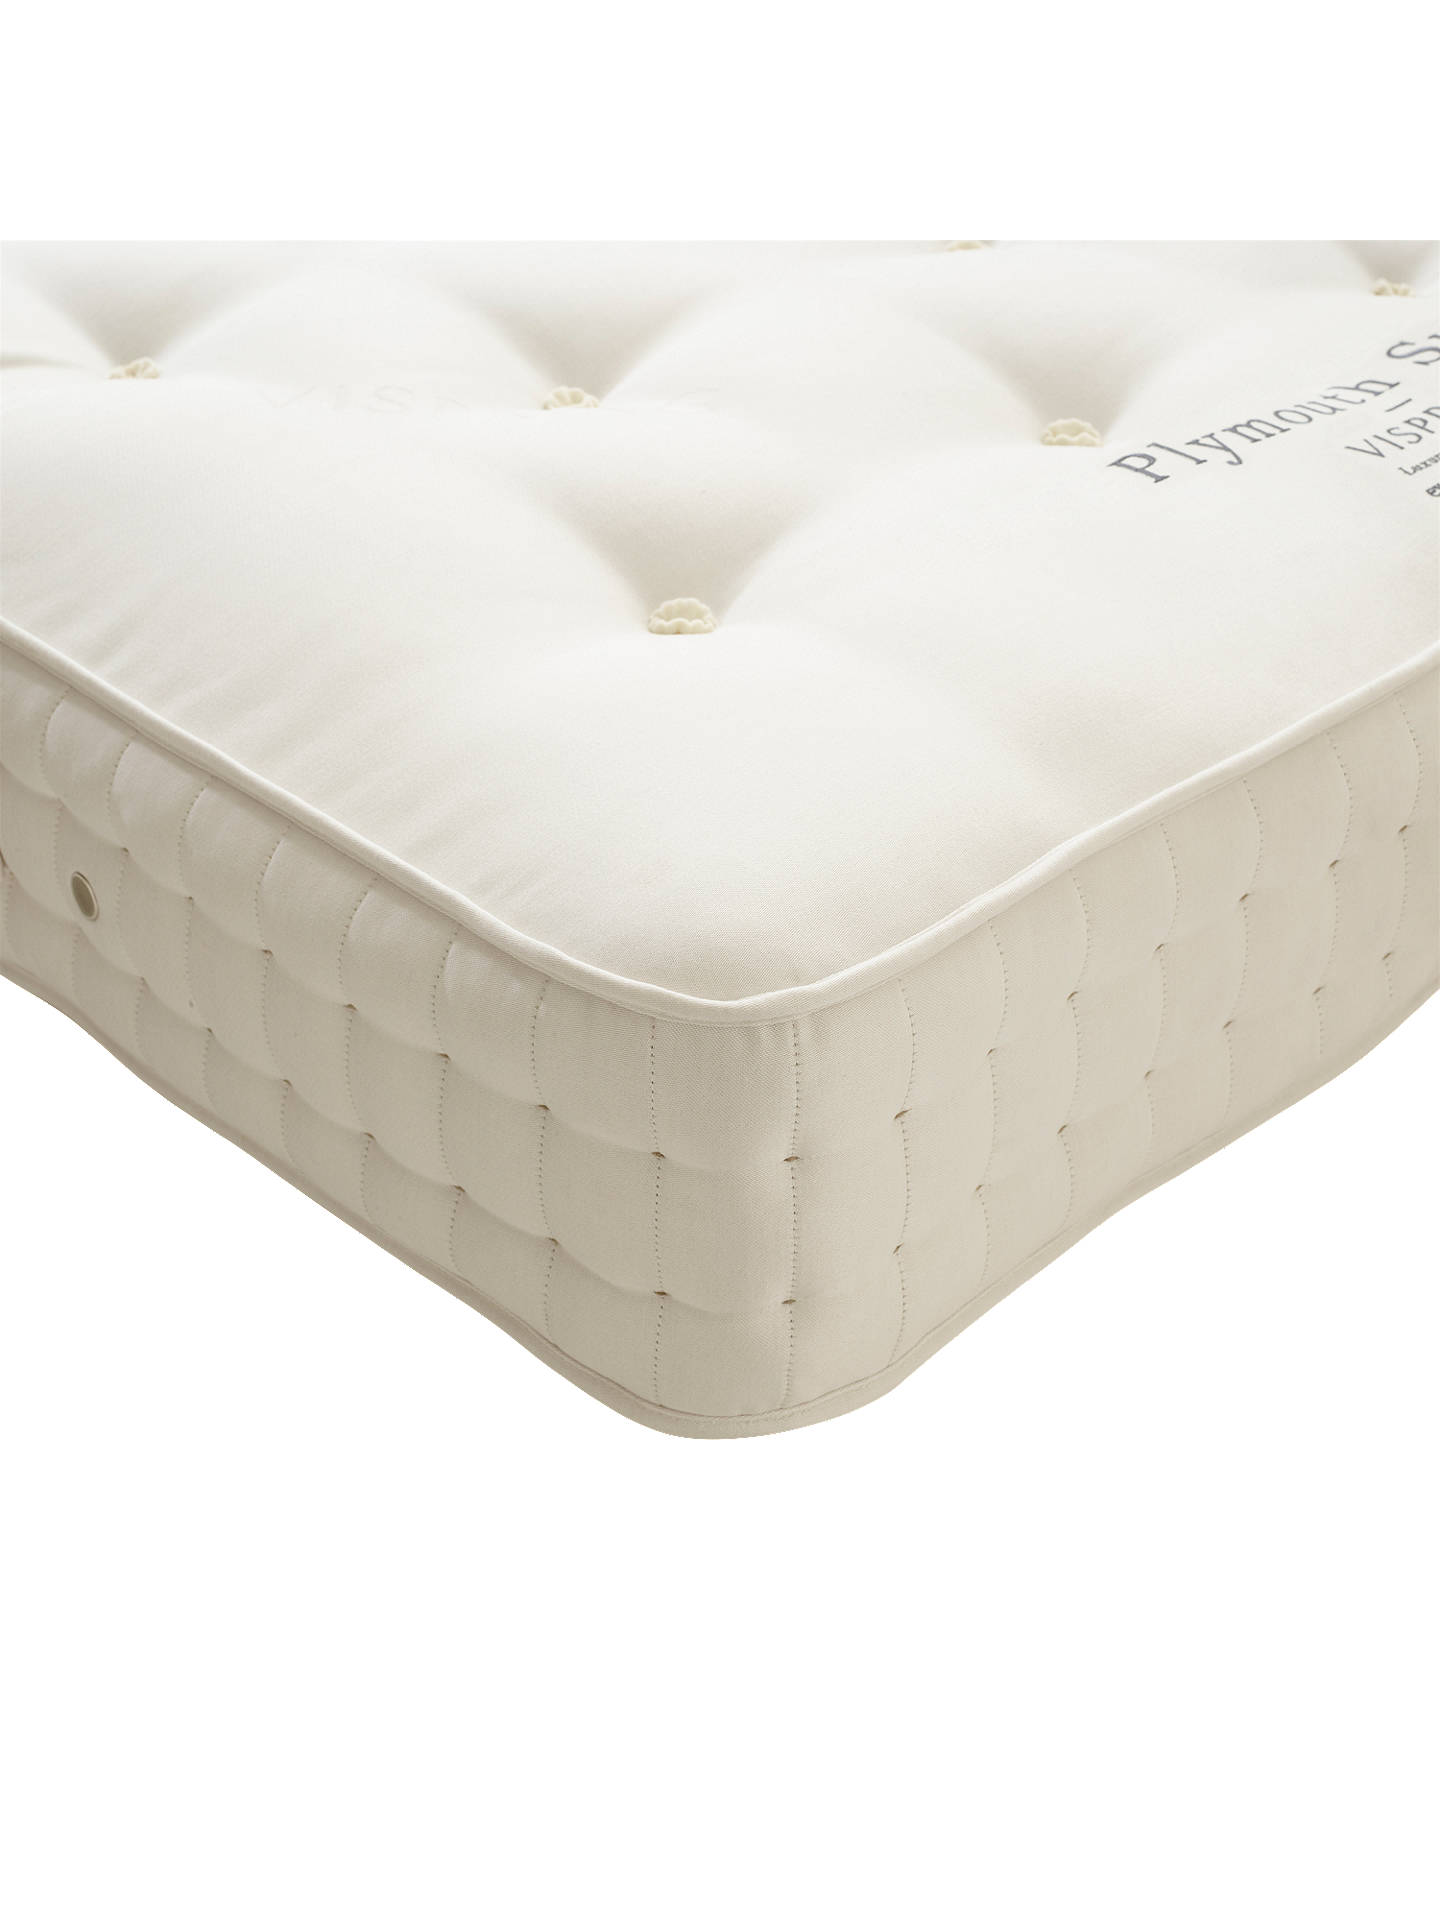 BuyVispring Plymouth Superb Mattress, Medium, Double Online at johnlewis.com